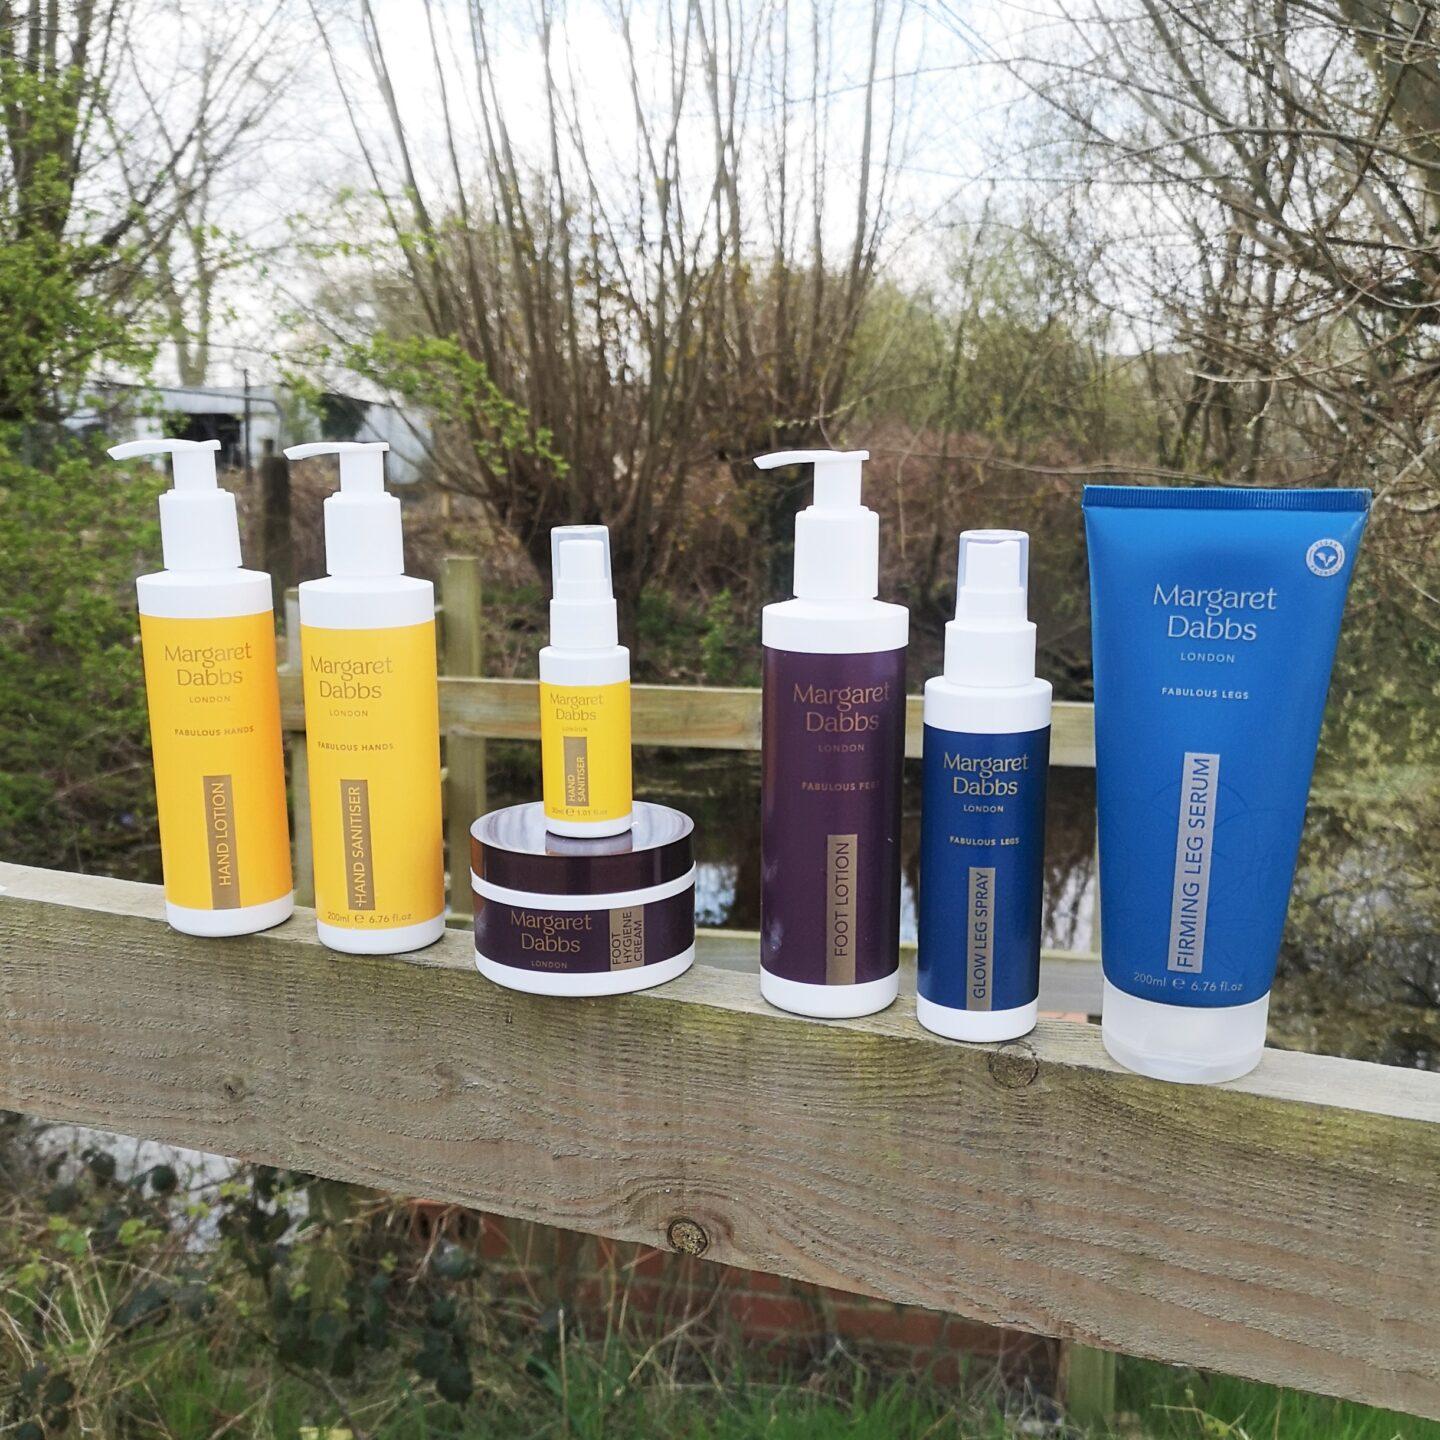 Margaret Dabbs Hands, Legs & Feet Body Essentials Set, Blog Anniversary Giveaway, Footcare, Handcare, Margaret Dabbs London, Giveaway, win, the Frenchie Mummy, Hand and Feet Set, Luxurious Beauty